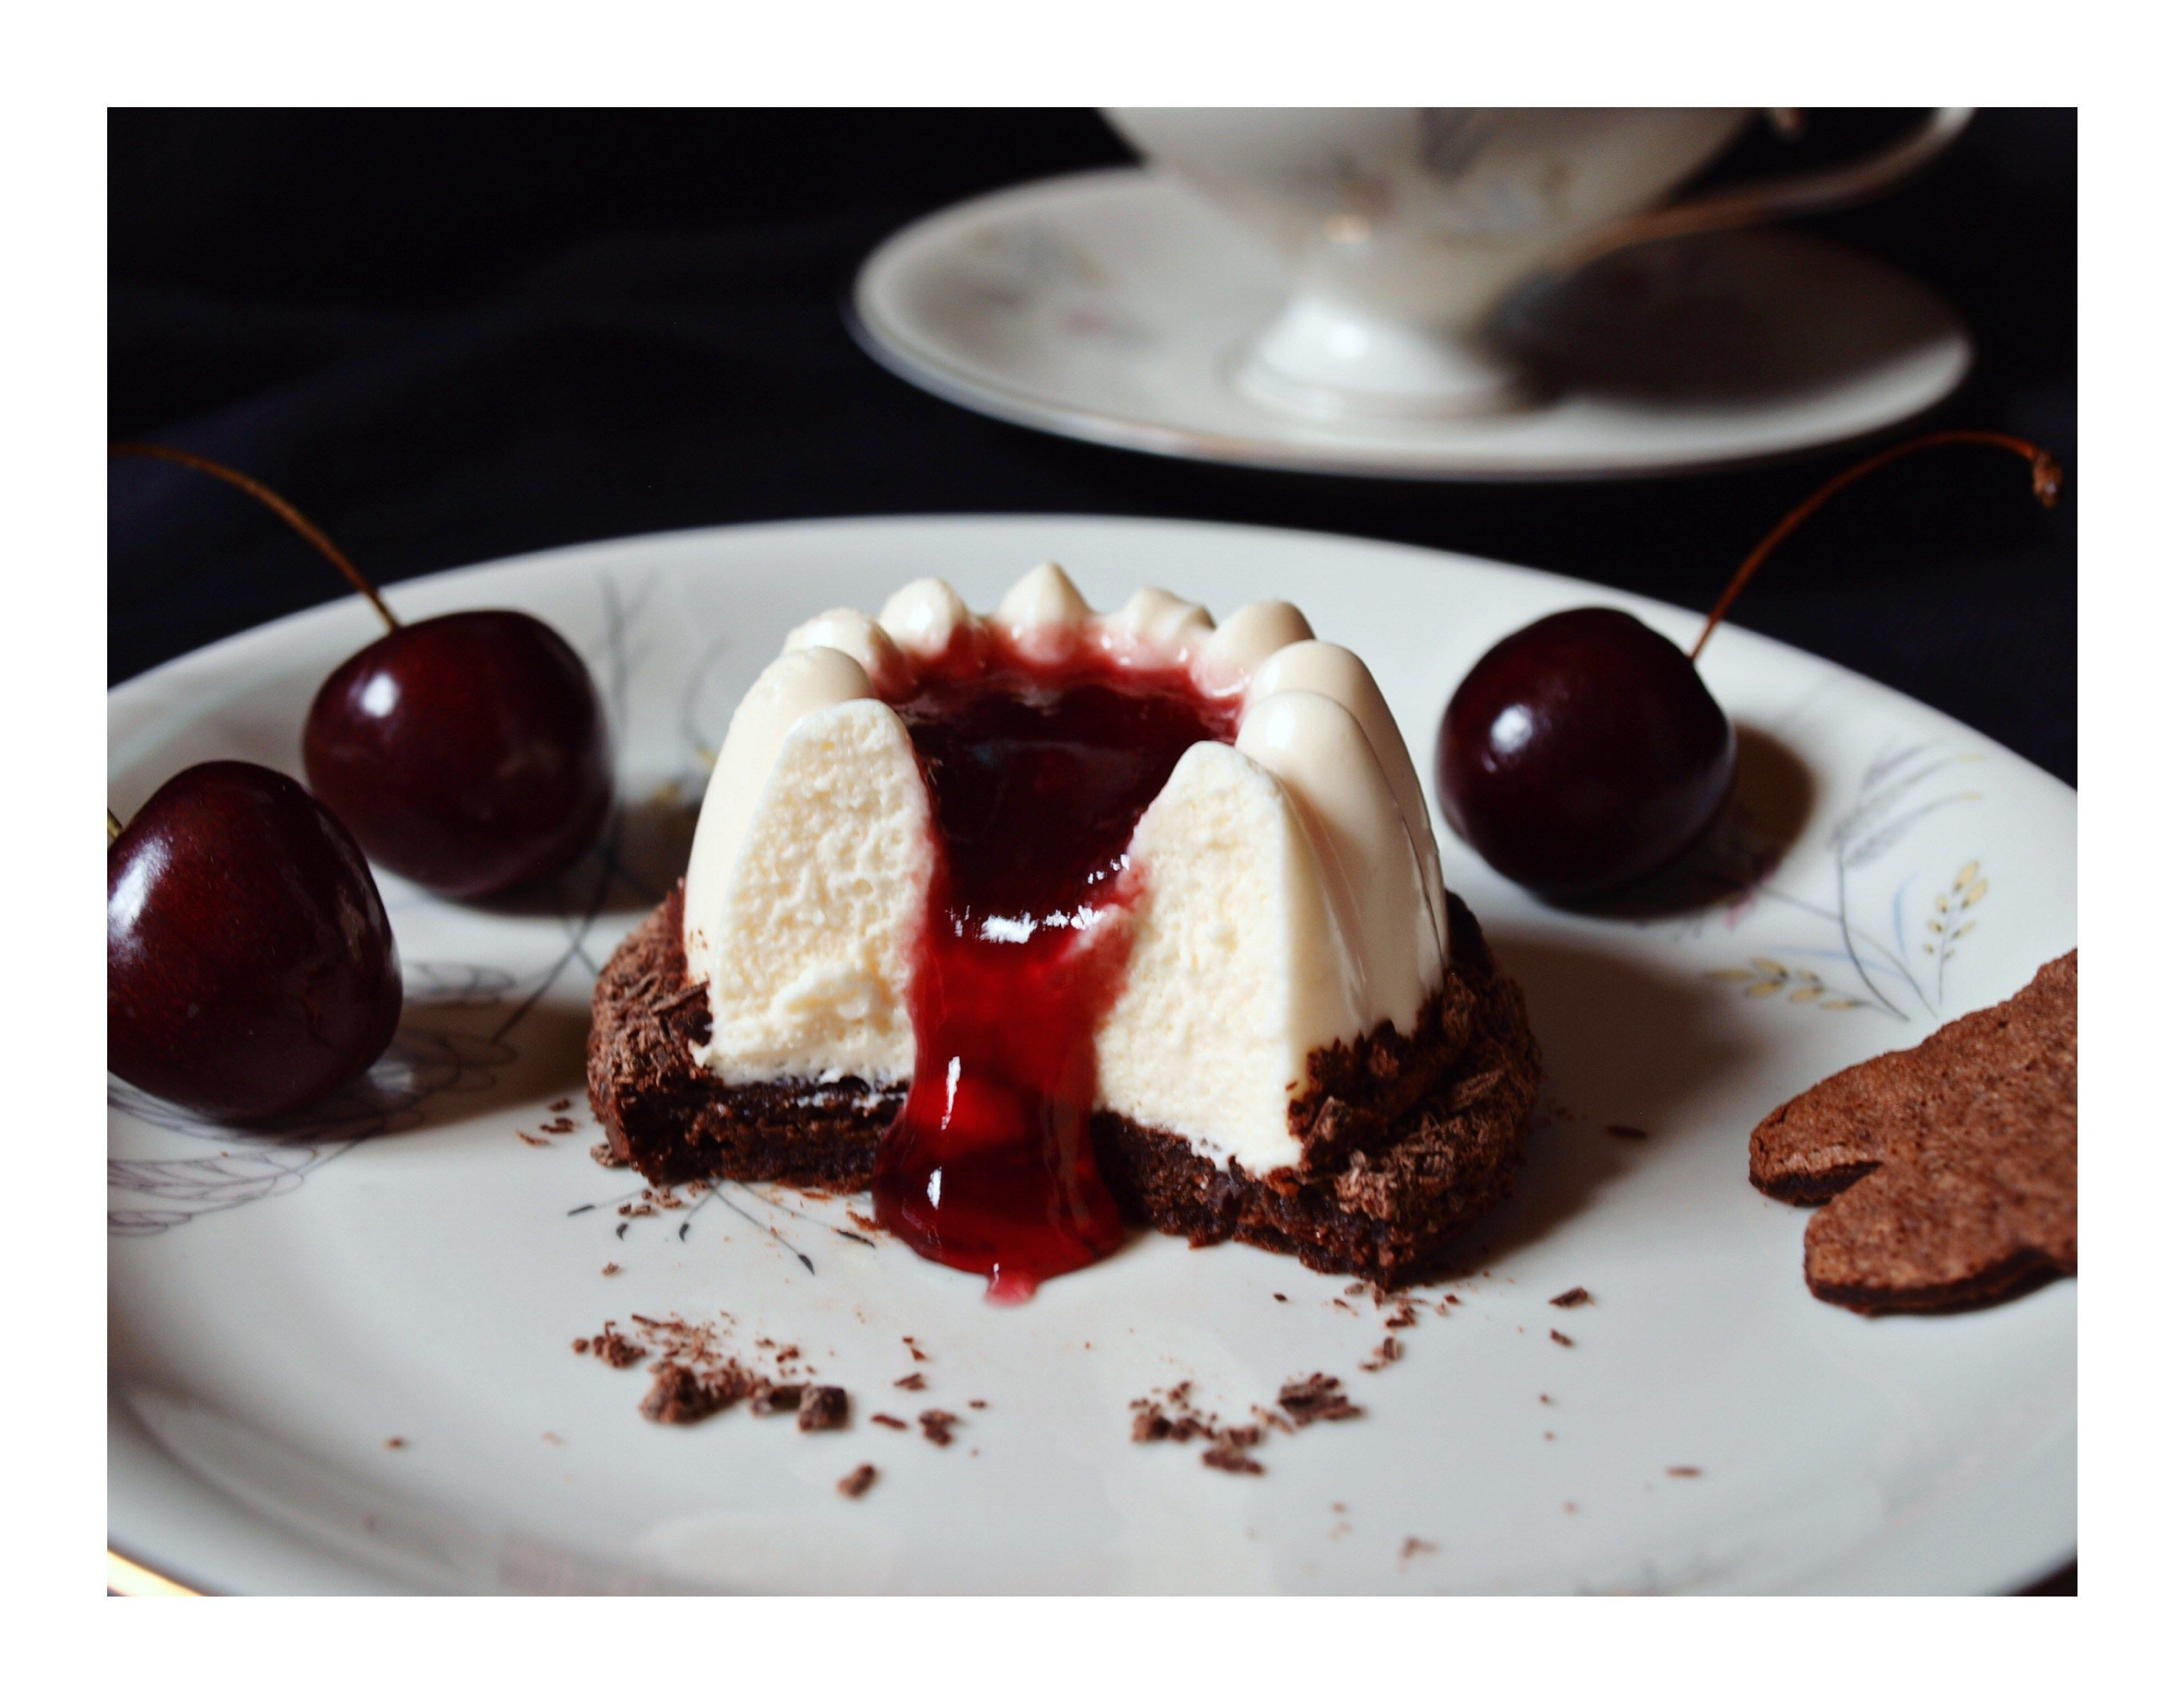 Kirsch-Schokoladen-Törtchen mit Mascarpone-Mousse / Cherry Chocolate Cakes with Mascarpone Mousse